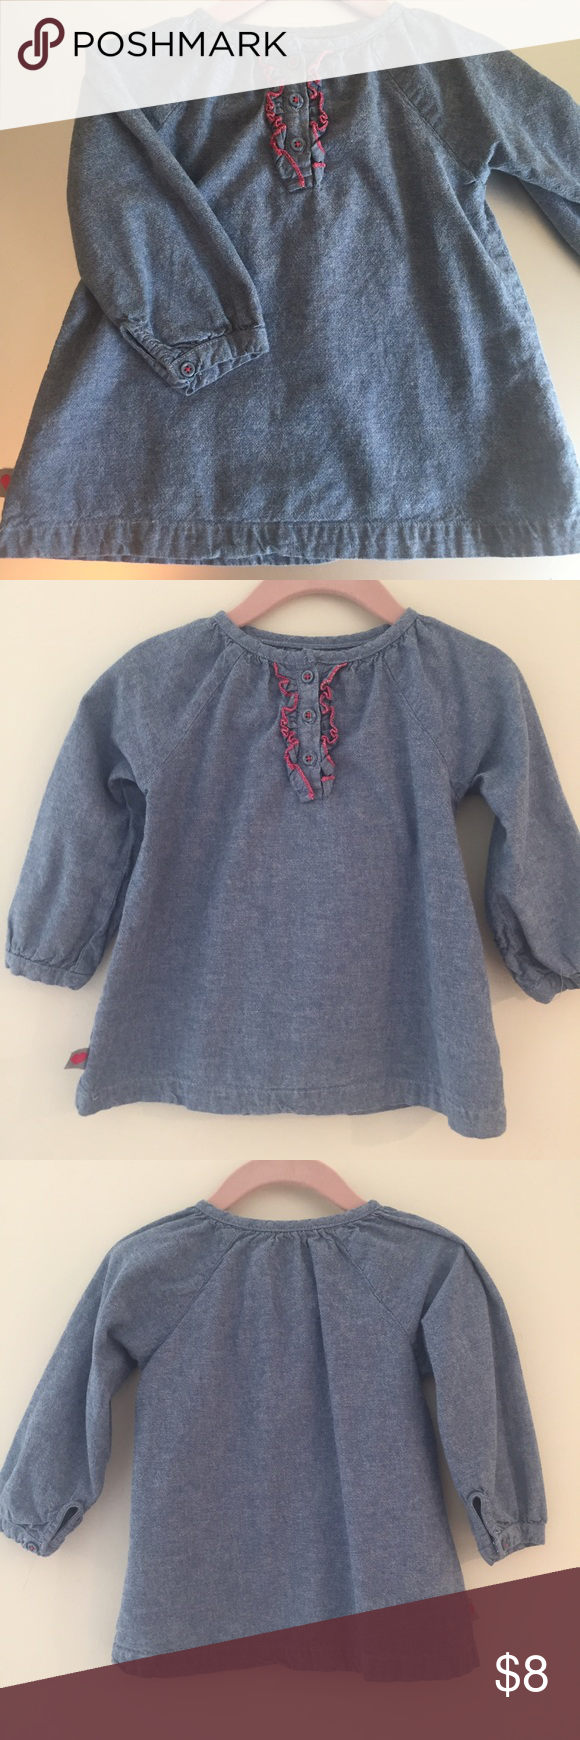 Chambray Blouse by Carters Chambray blouse by Carters. Button front. Ruffle detail. Gathered cuffs. 100% Cotton. Gently used and in Excellent condition. Carter's Shirts & Tops Blouses